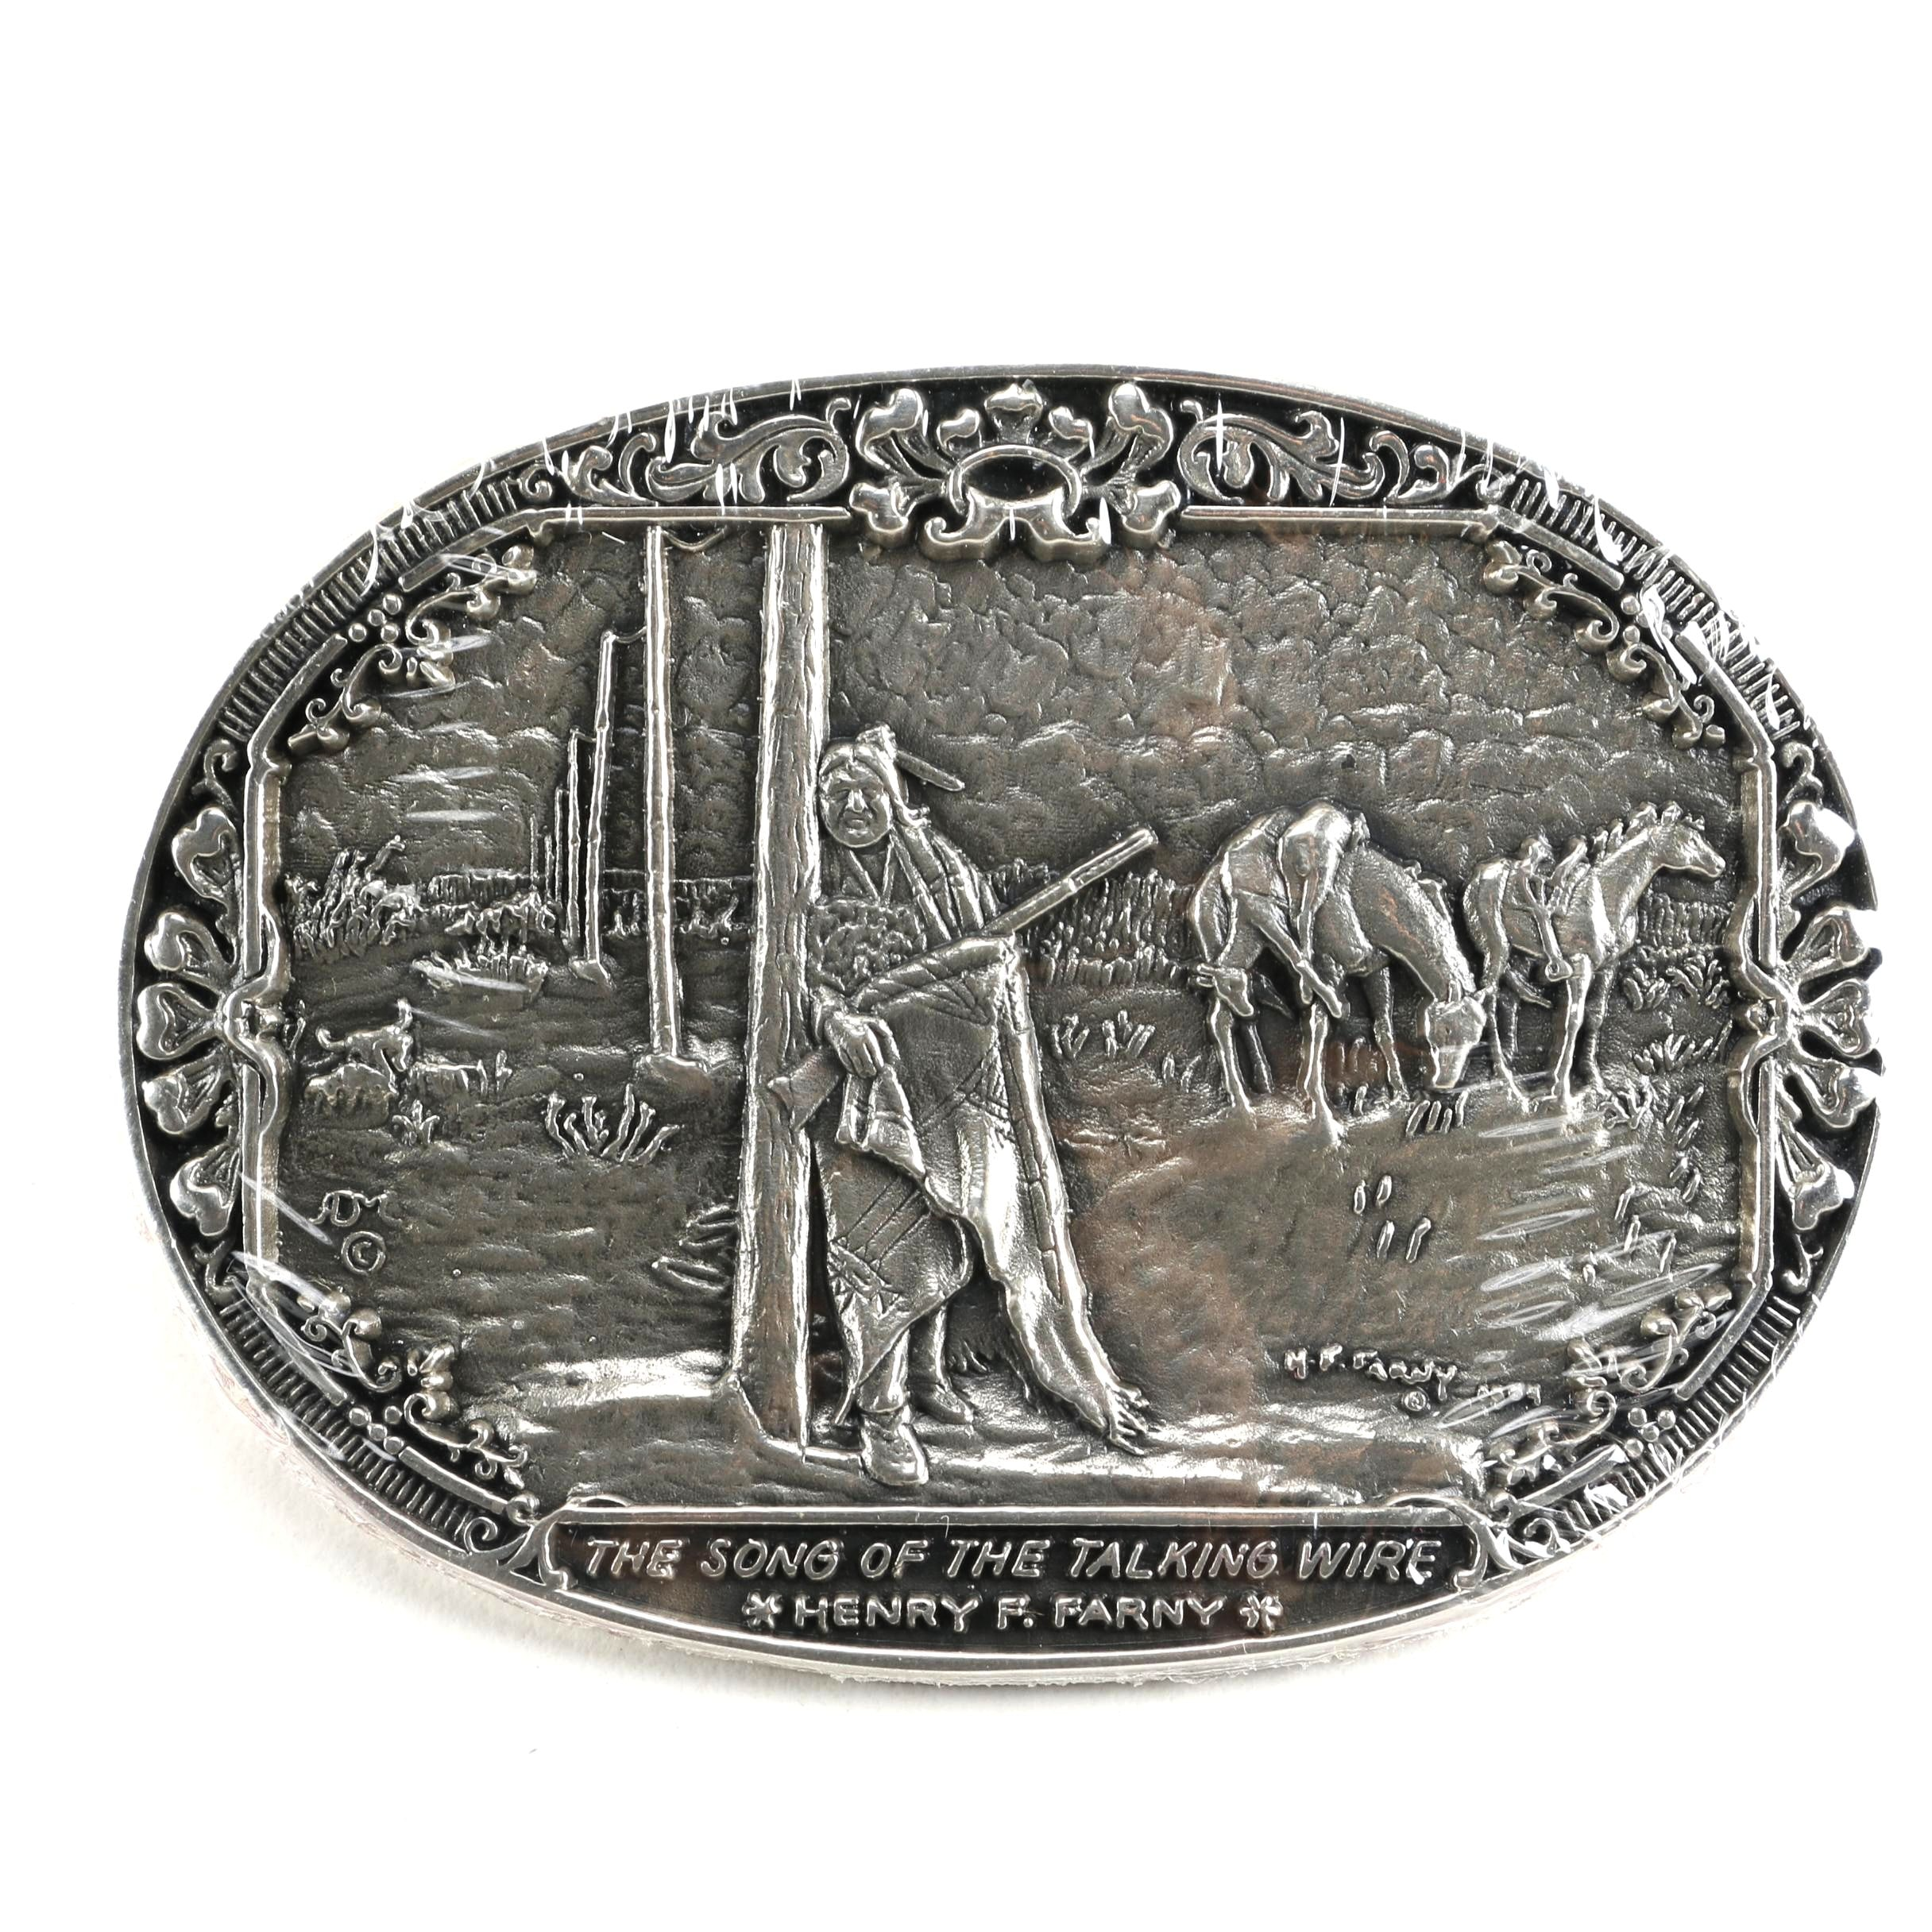 Sterling Silver Belt Buckle from Visions of the Old West